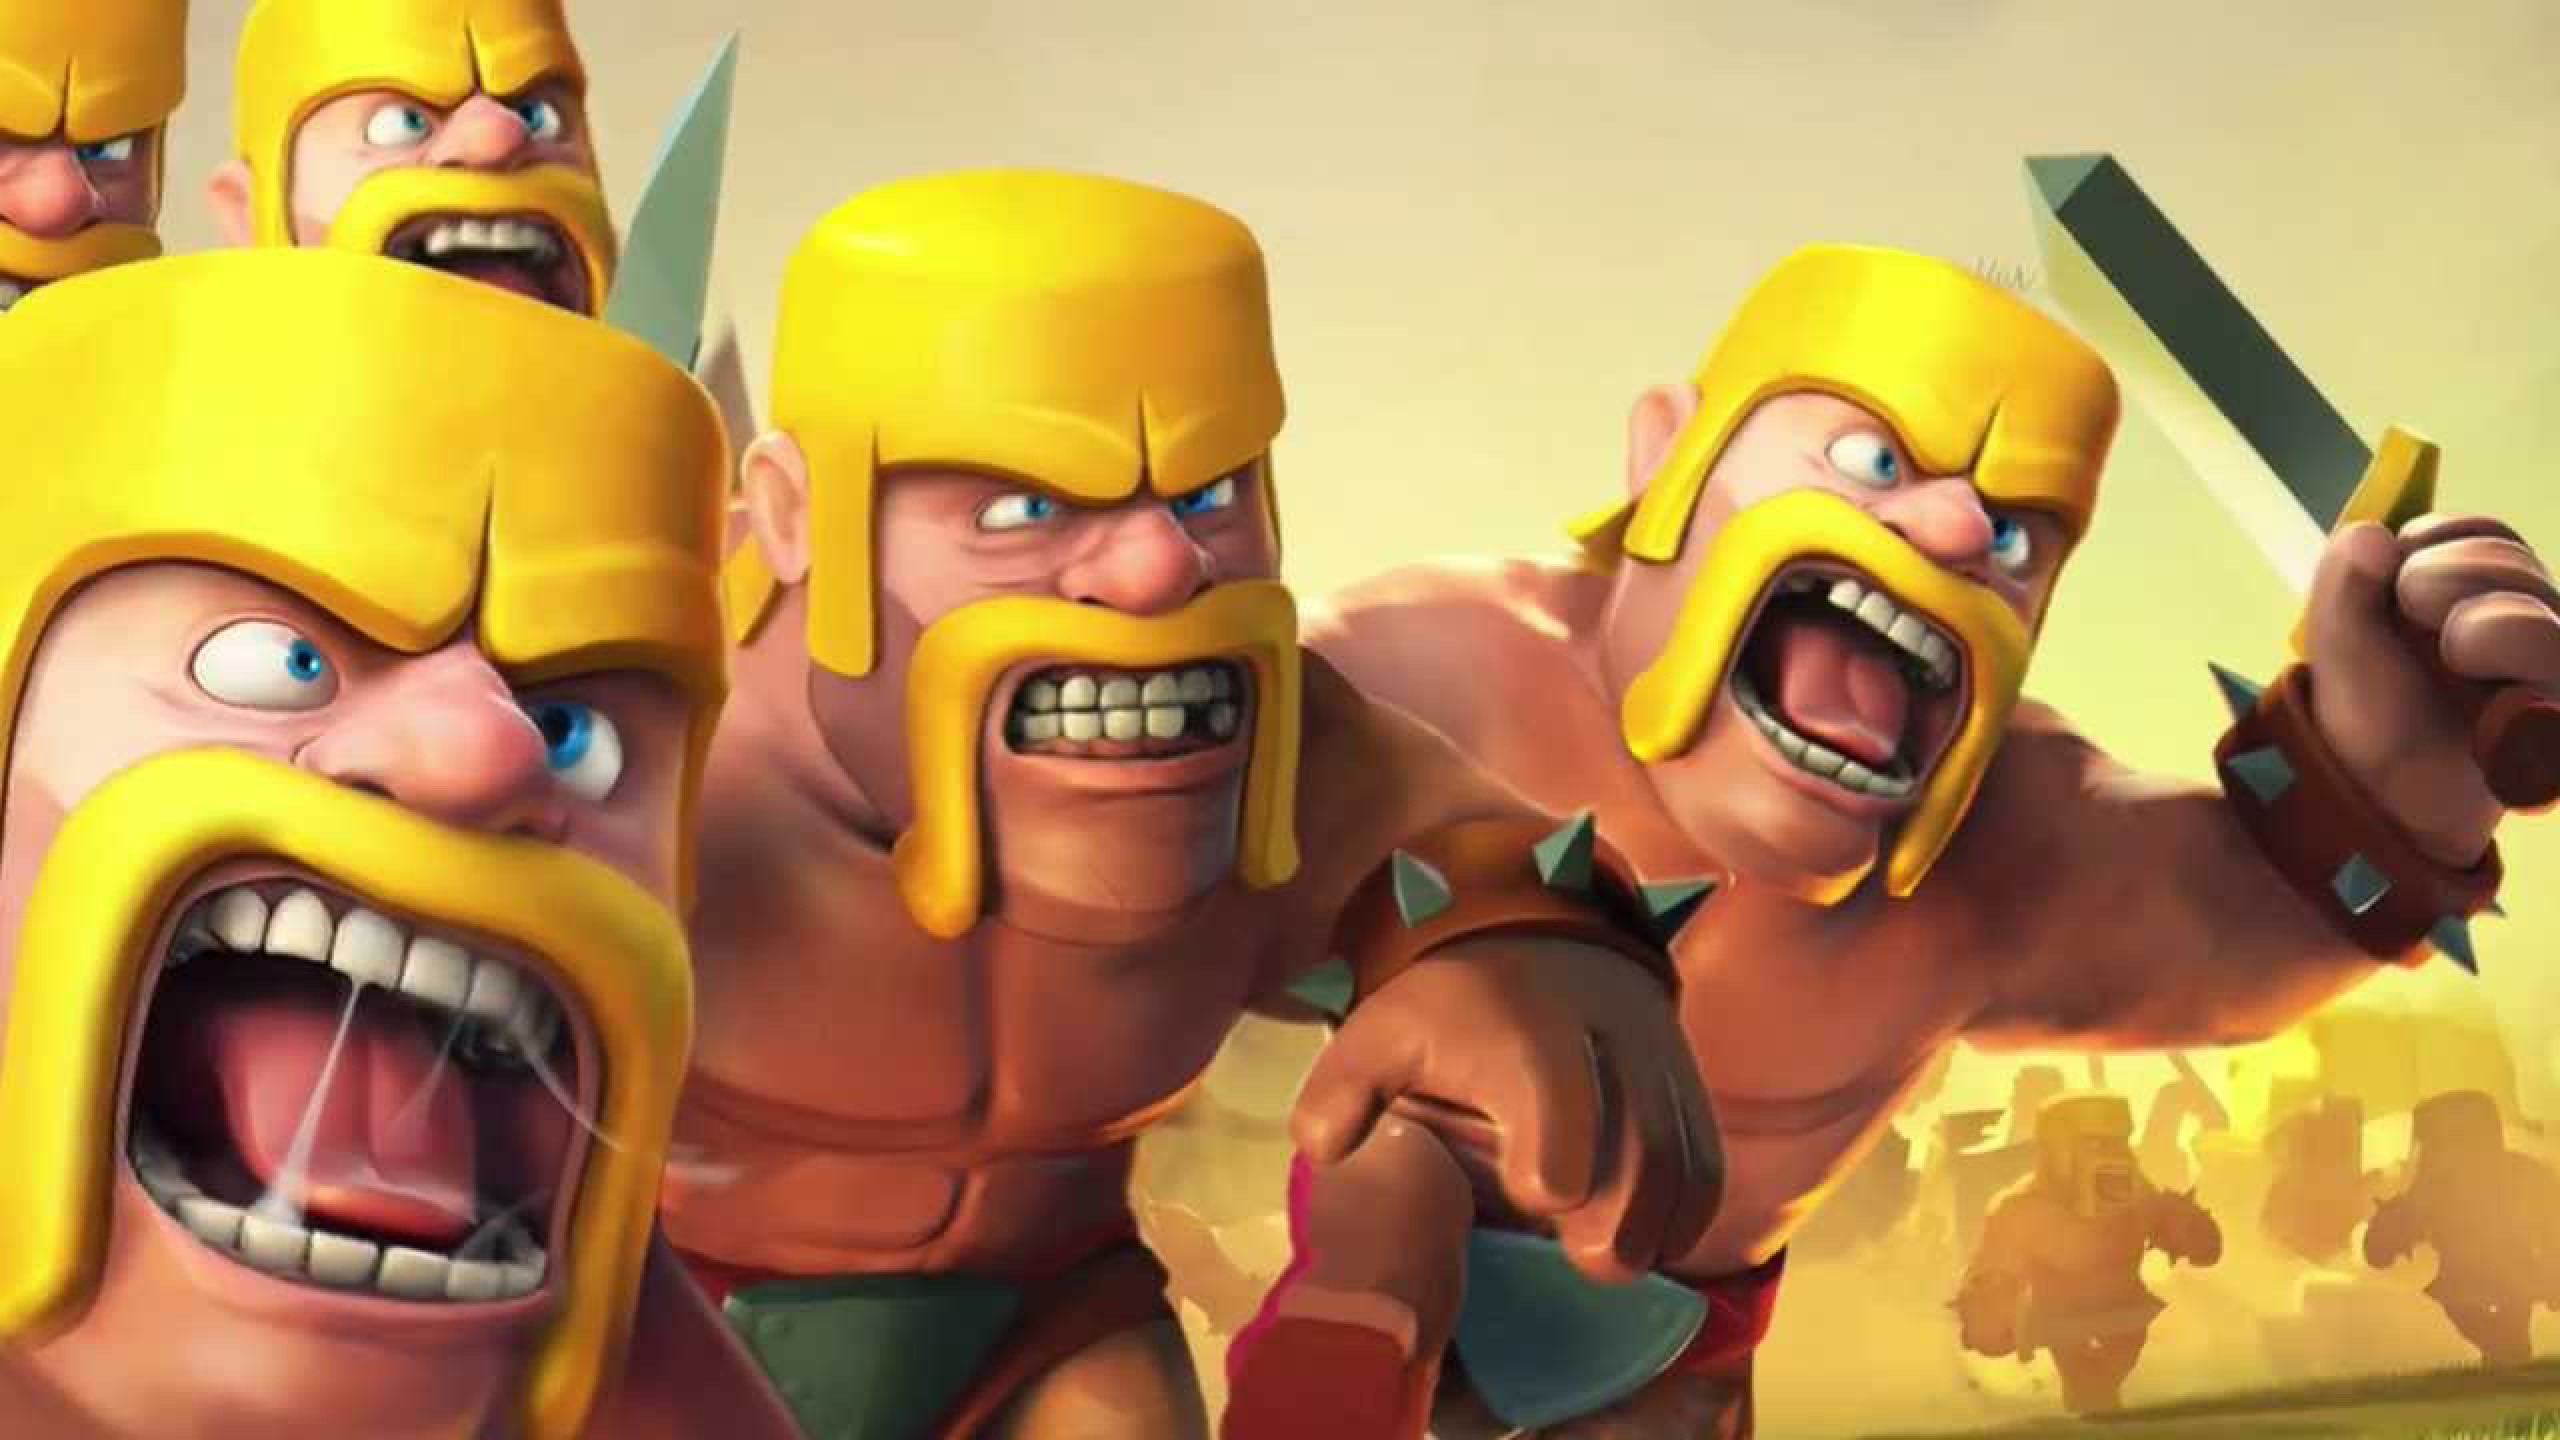 Barbarian Clash Of Clans Hd Hd Games 4k Wallpapers: Wonderful Clash Of Clans Barbarian Wallpaper